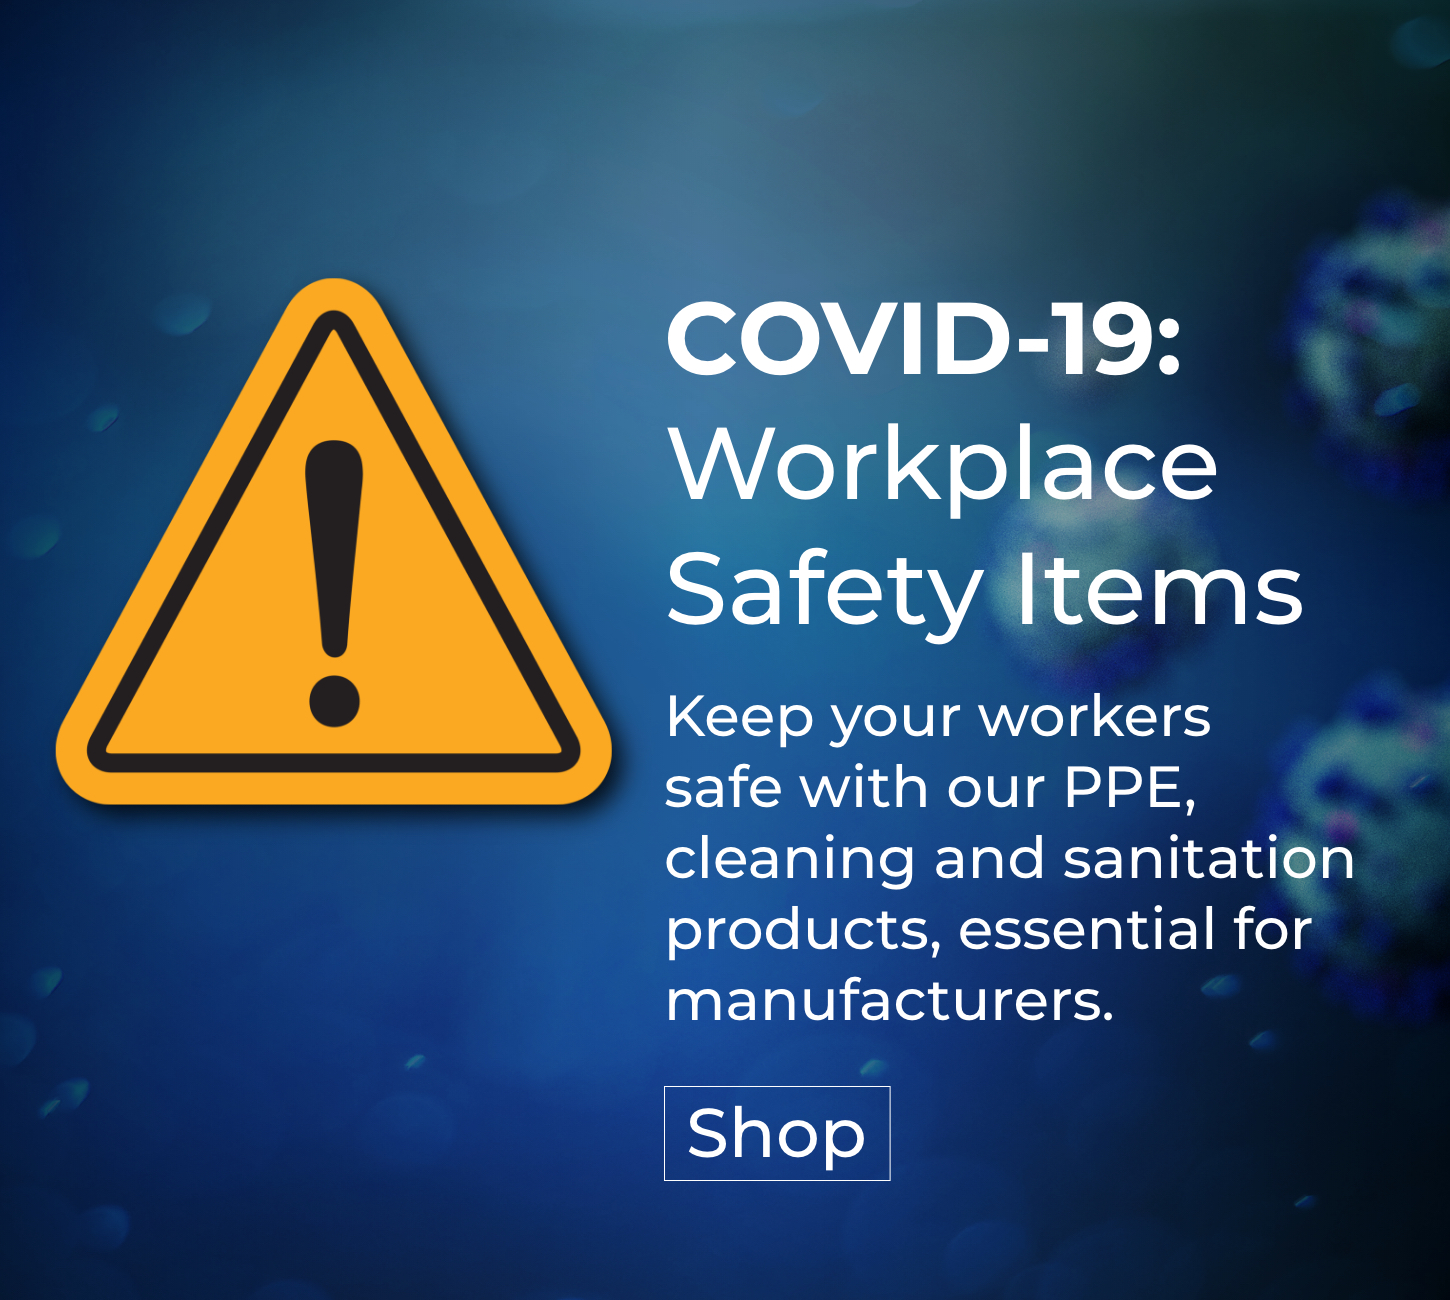 Shop our COVID-19 Safety Items